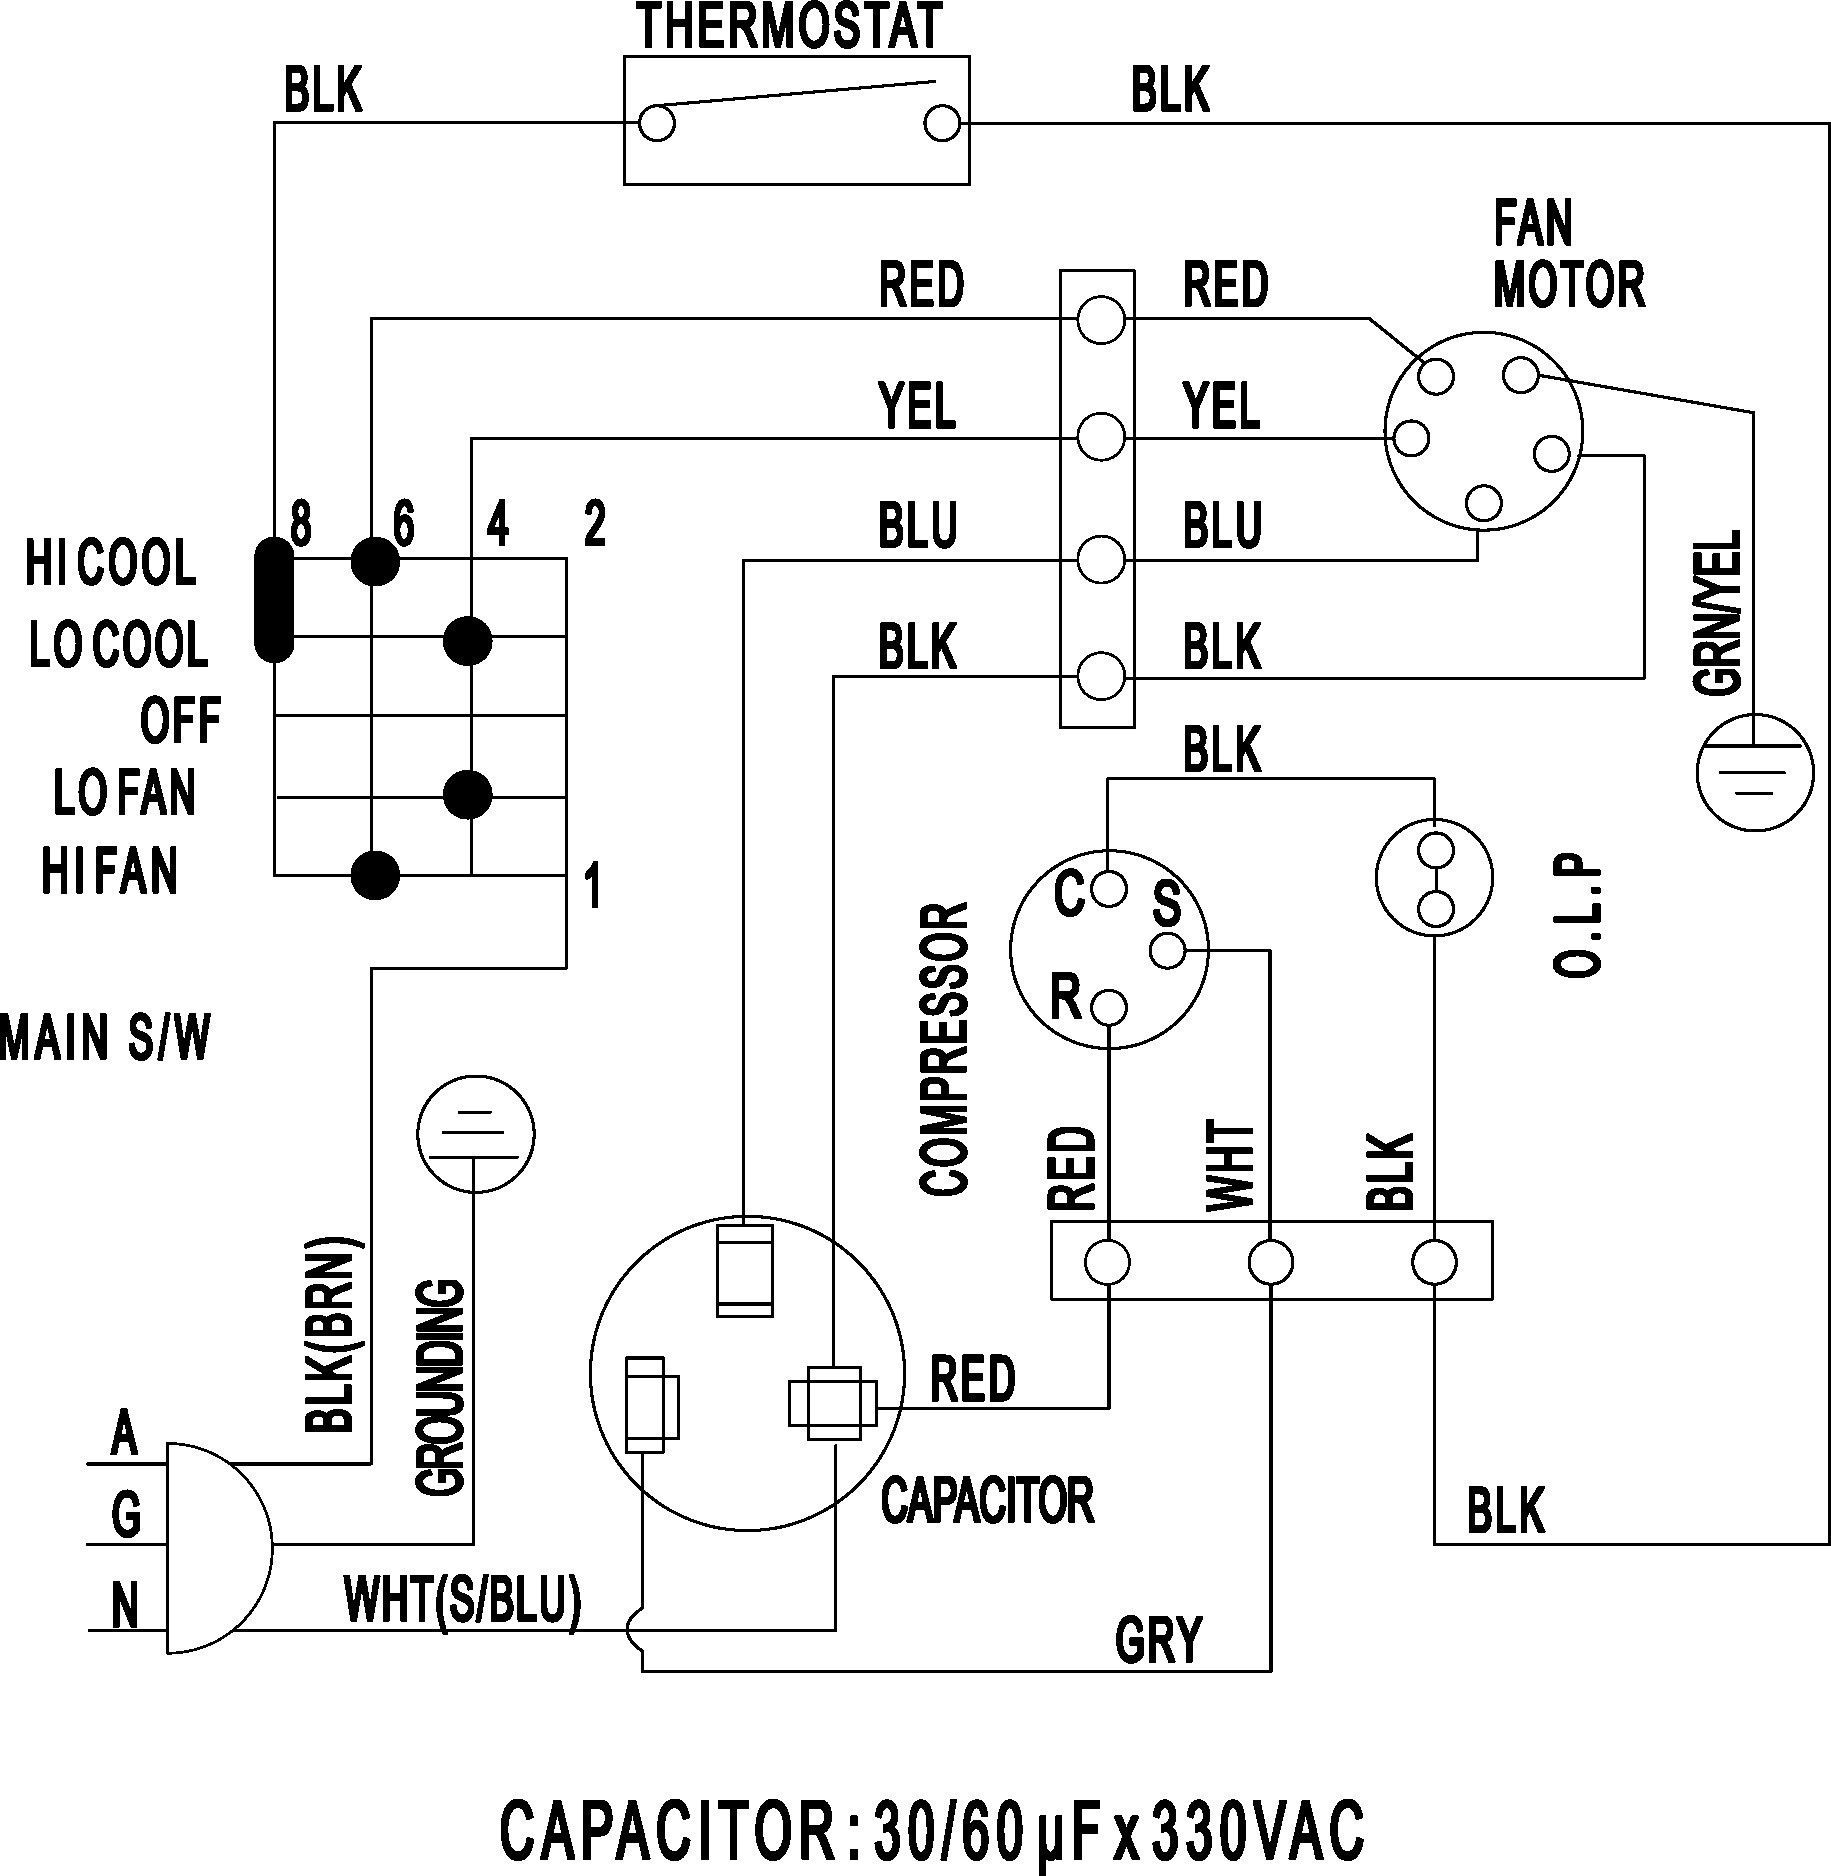 Wiring Diagram Ac Cassette Diagram Diagramtemplate